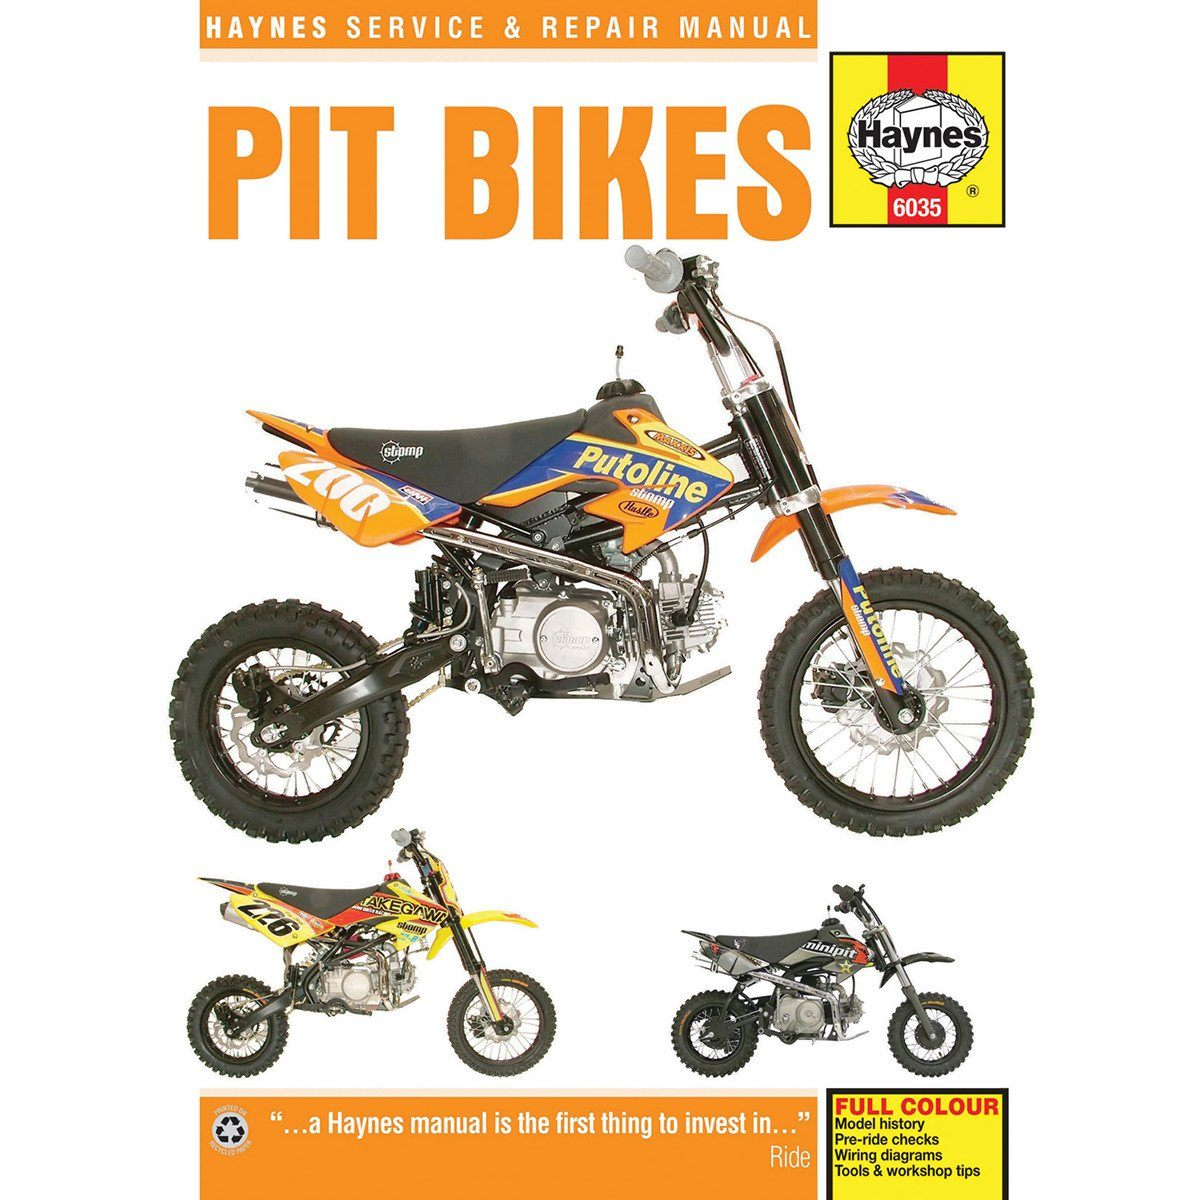 Haynes Pit Bike Manual - 6035 - Chinese 4-Stroke Air-Cooled ... on